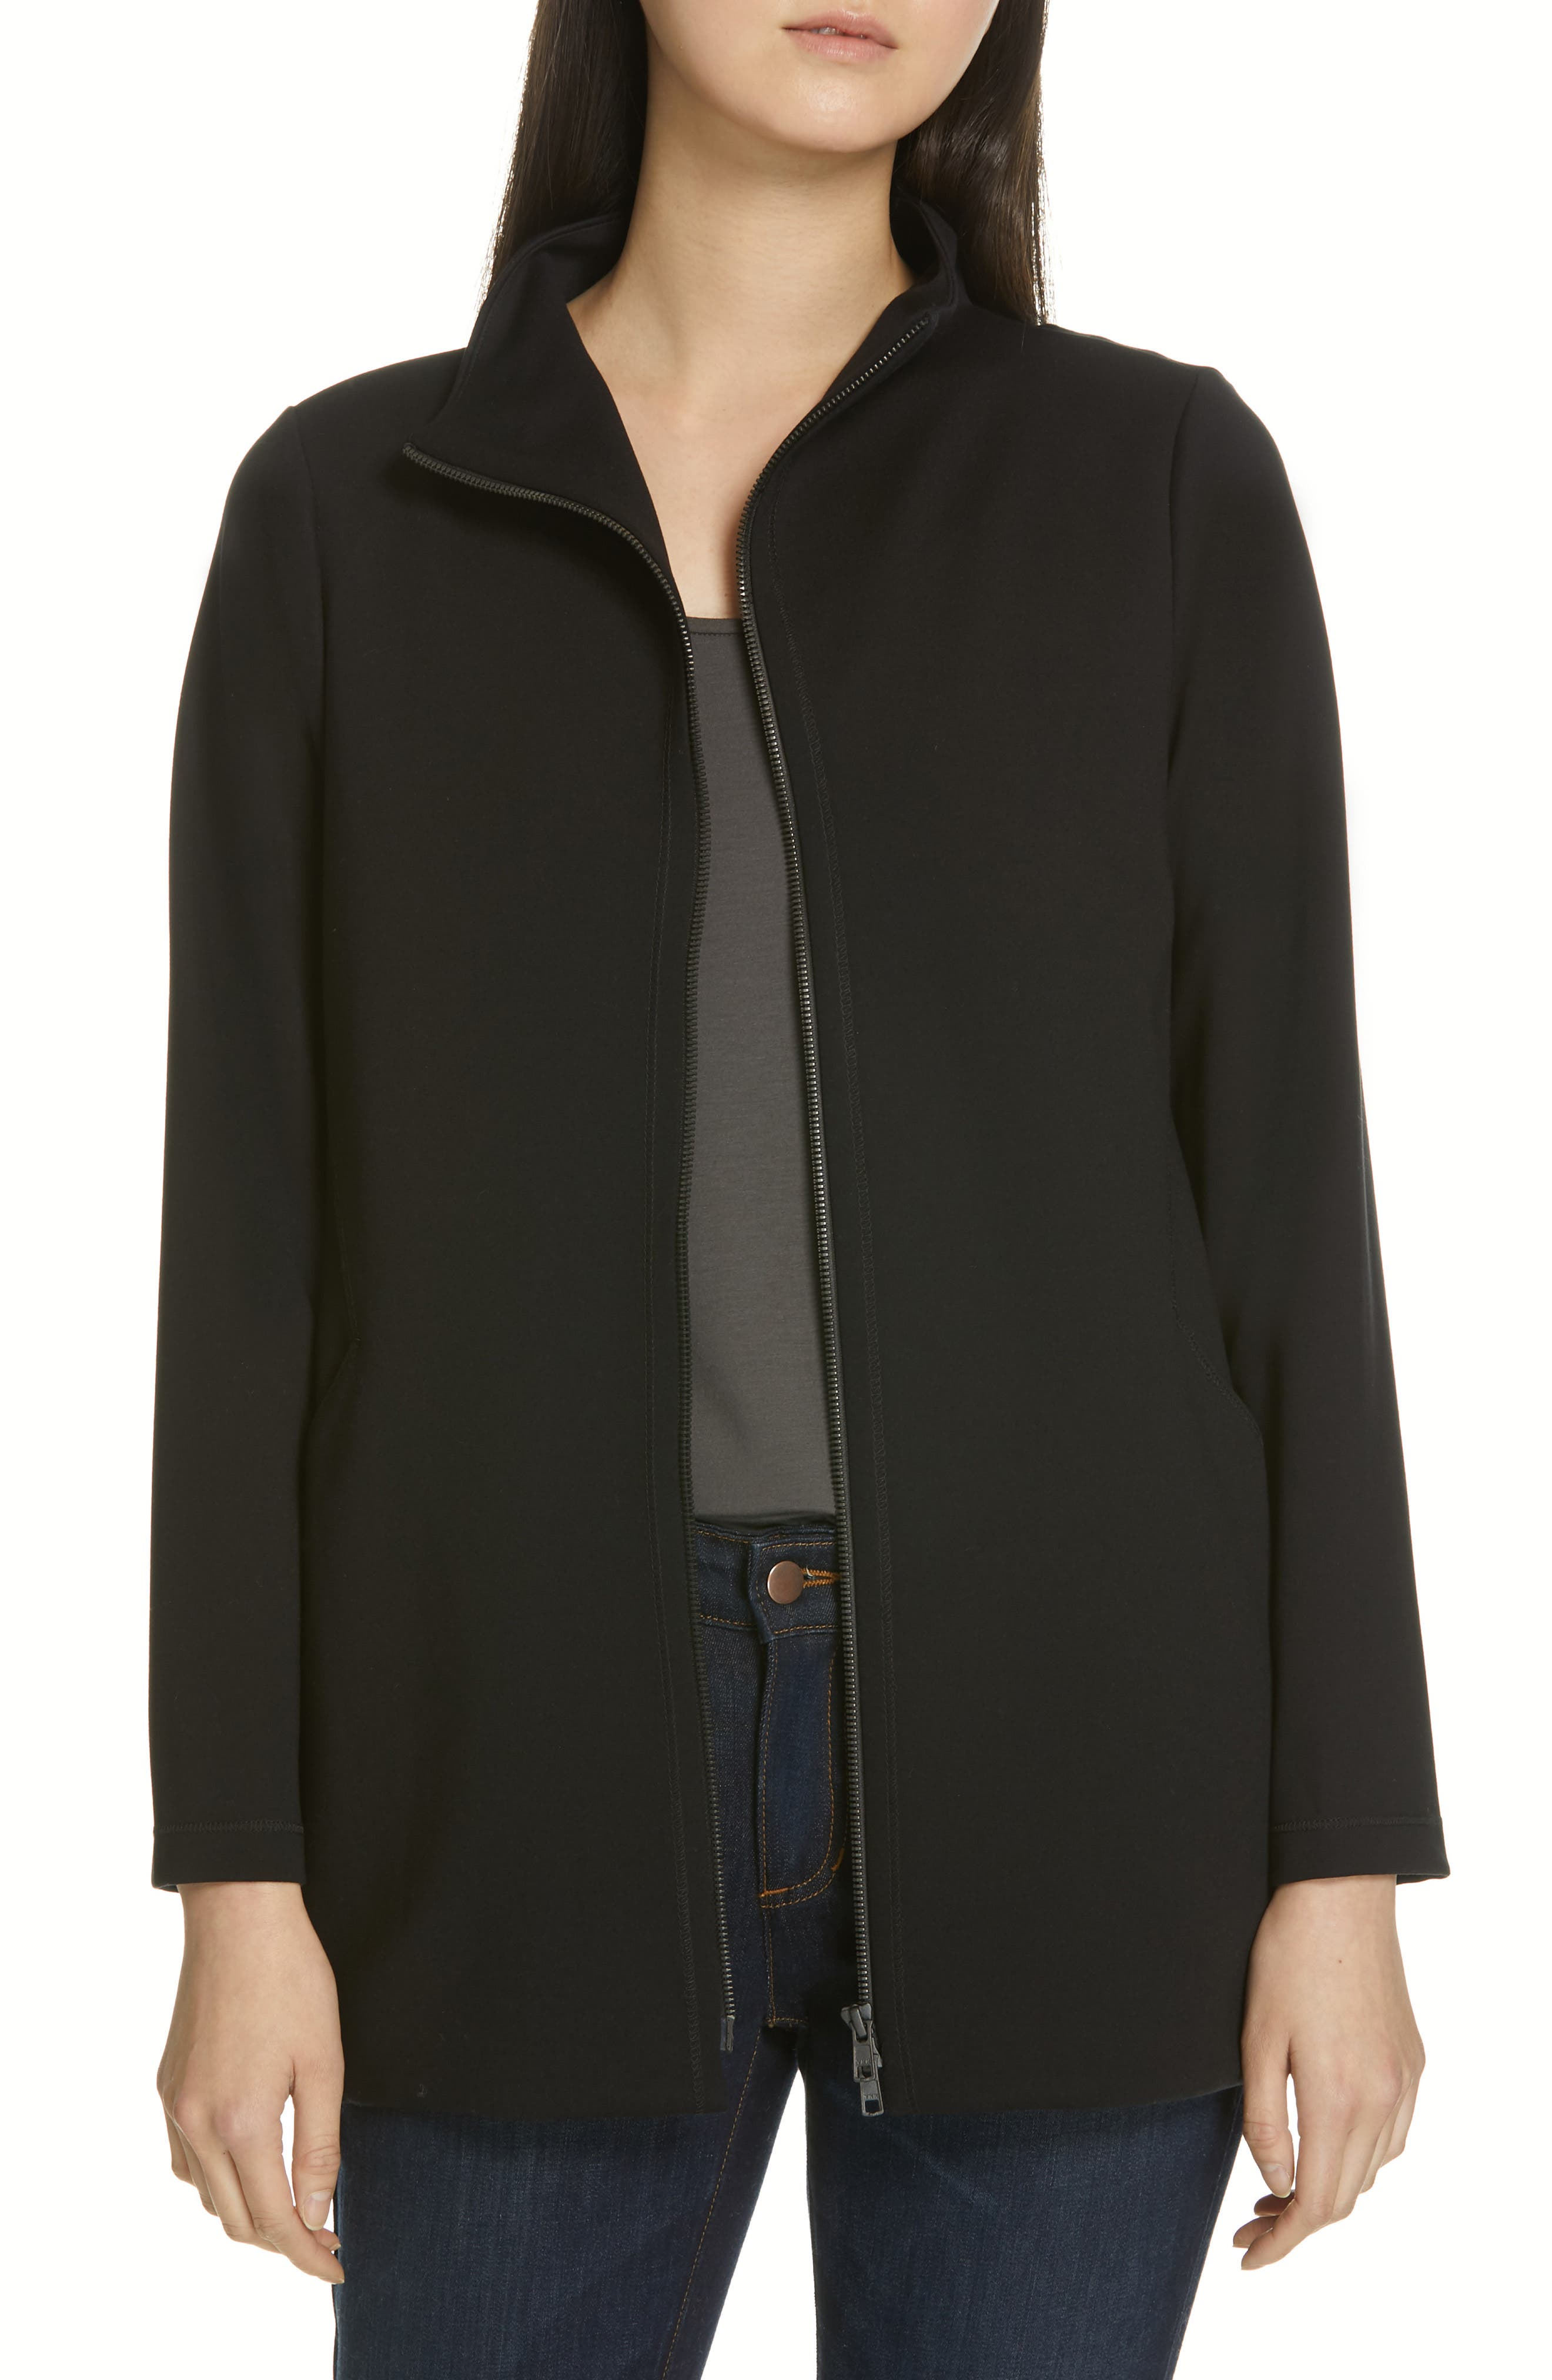 EILEEN FISHER, Zip Front Jacket, Main thumbnail 1, color, 001